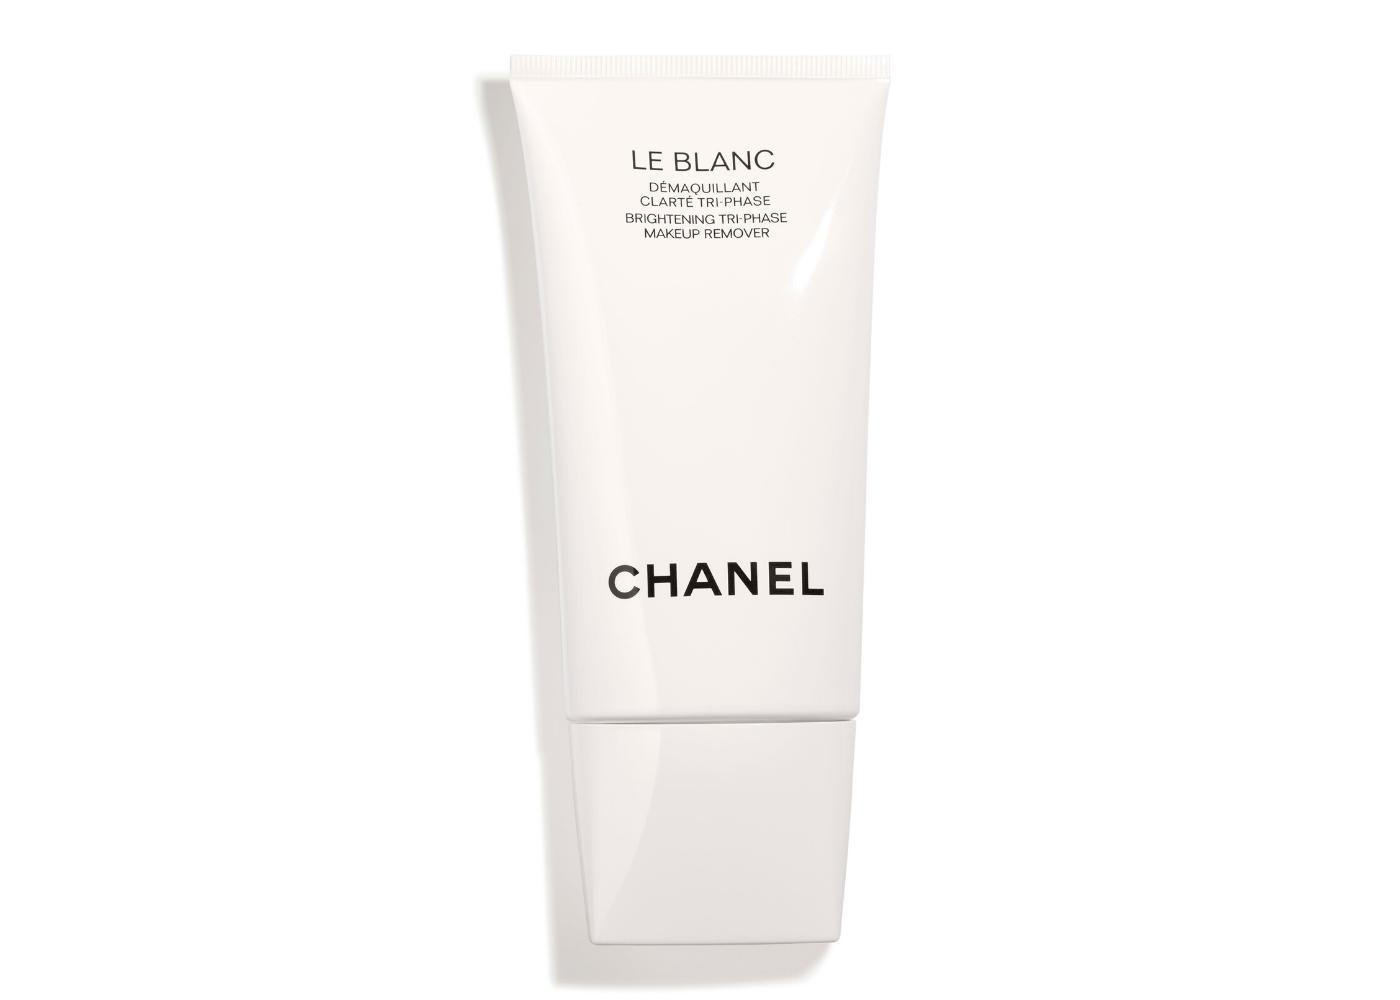 Le Blanc Brightening Tri Phase Makeup Remover